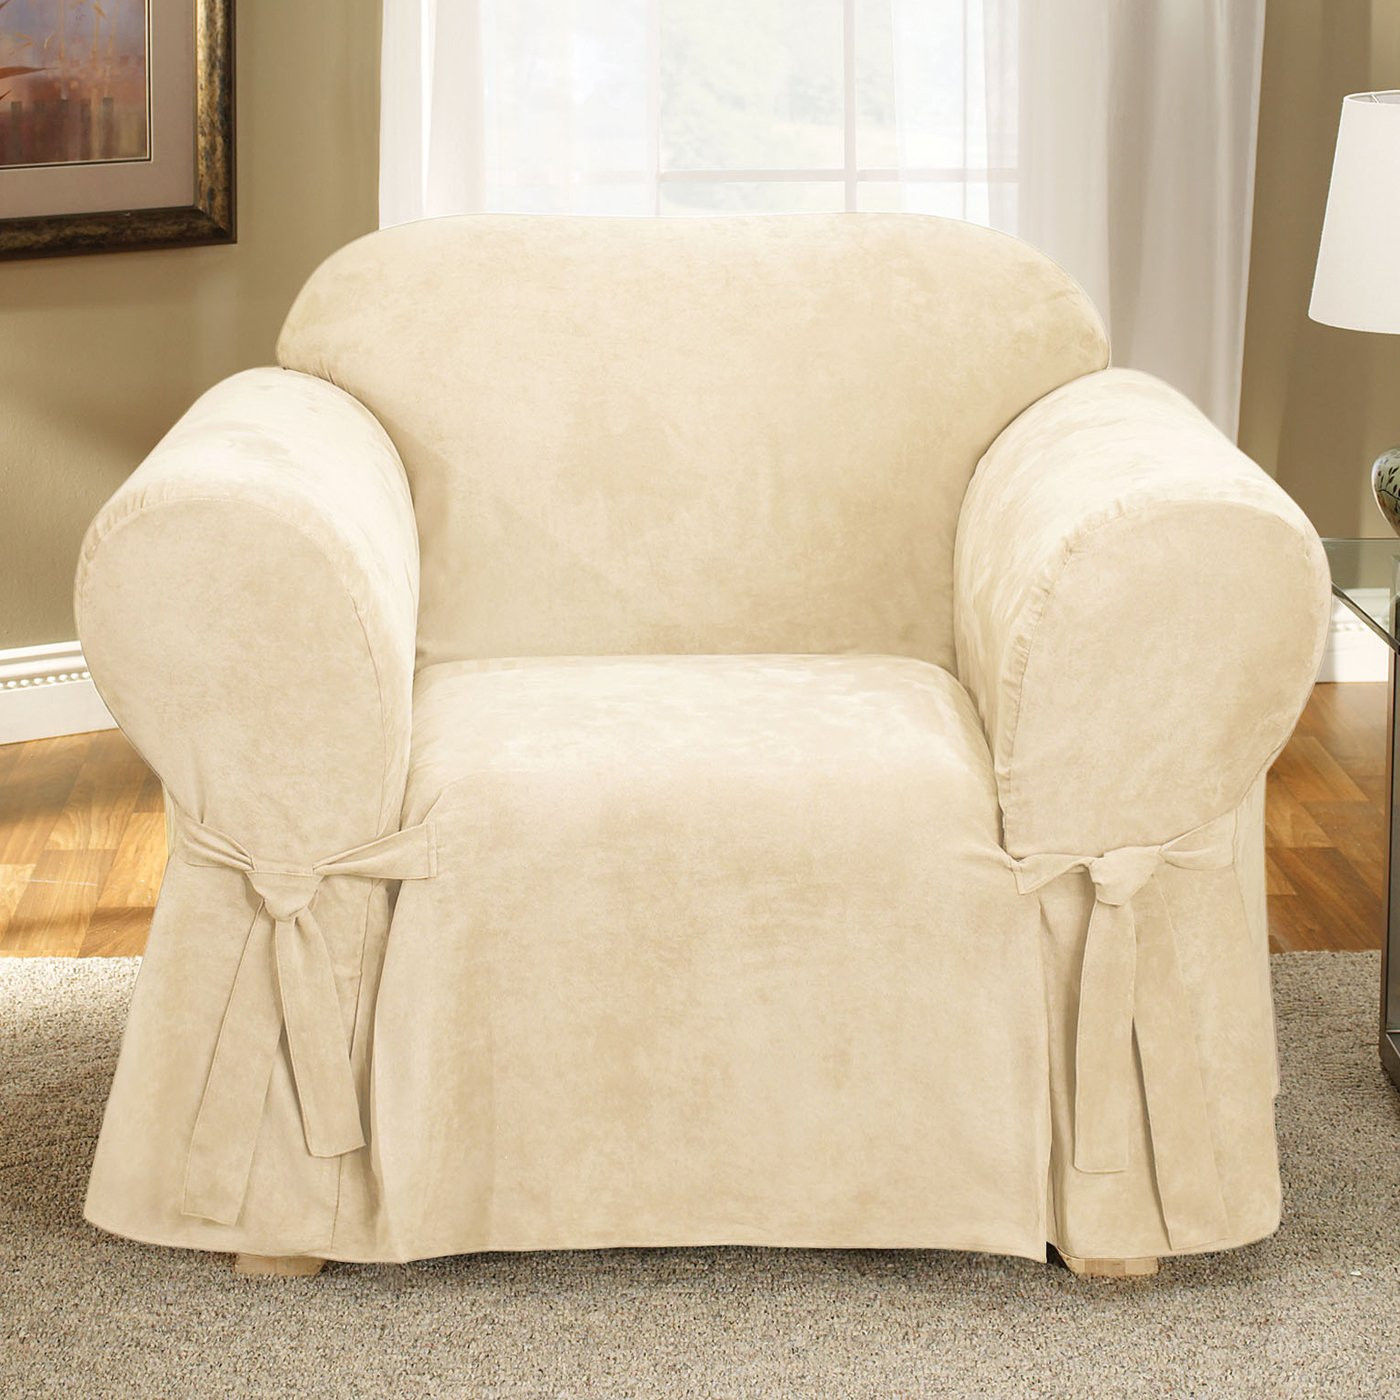 Best ideas about Sure Fit Chair Covers . Save or Pin Sure Fit Slipcovers Soft Suede 1 Piece Chair Slipcover Now.